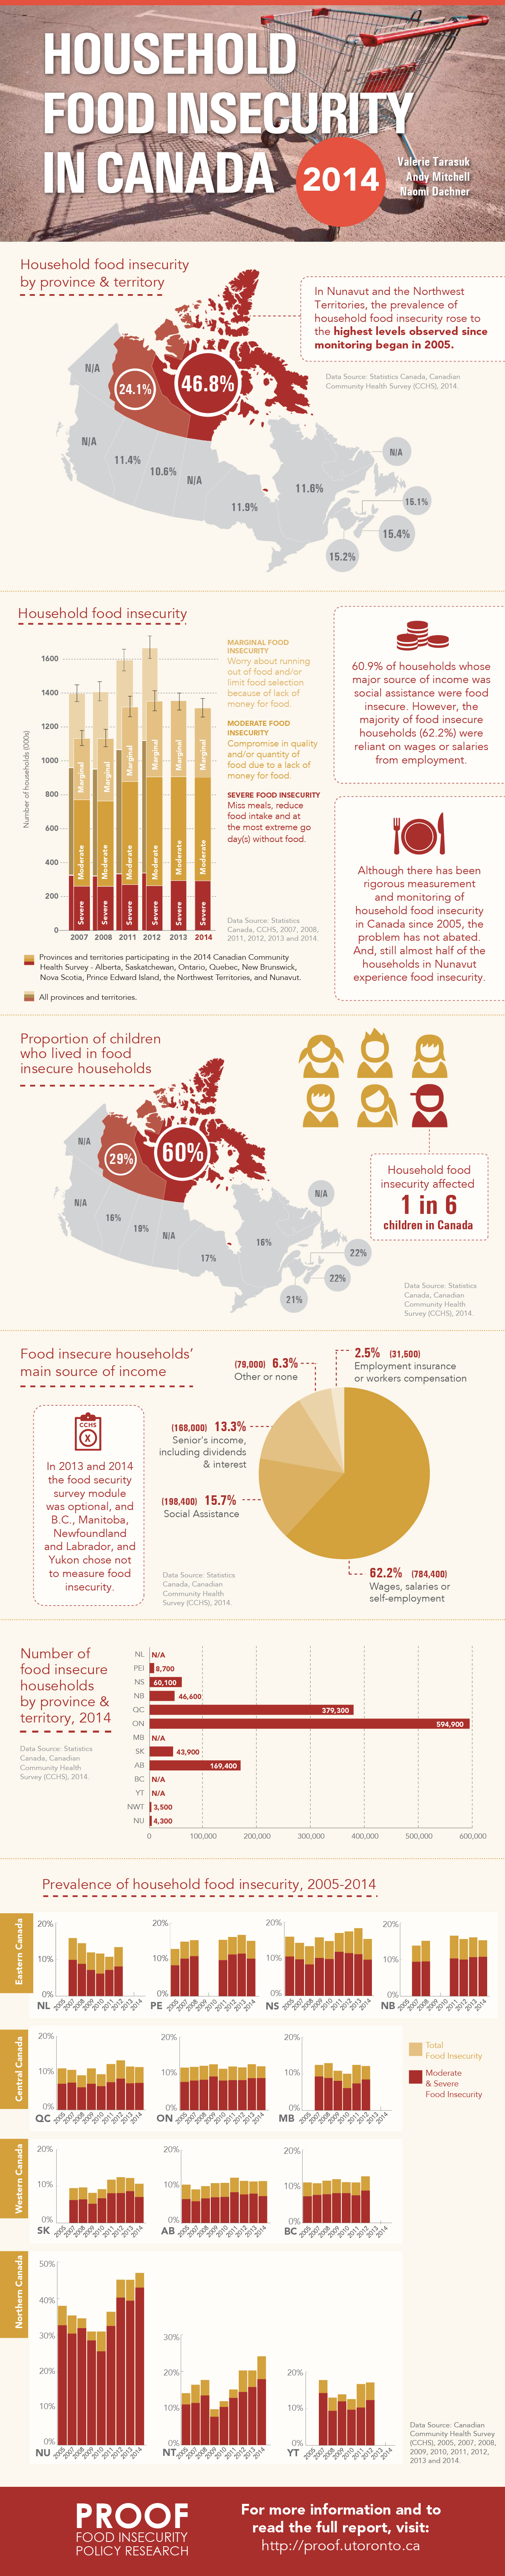 Food Insecurity 2014 Infographic